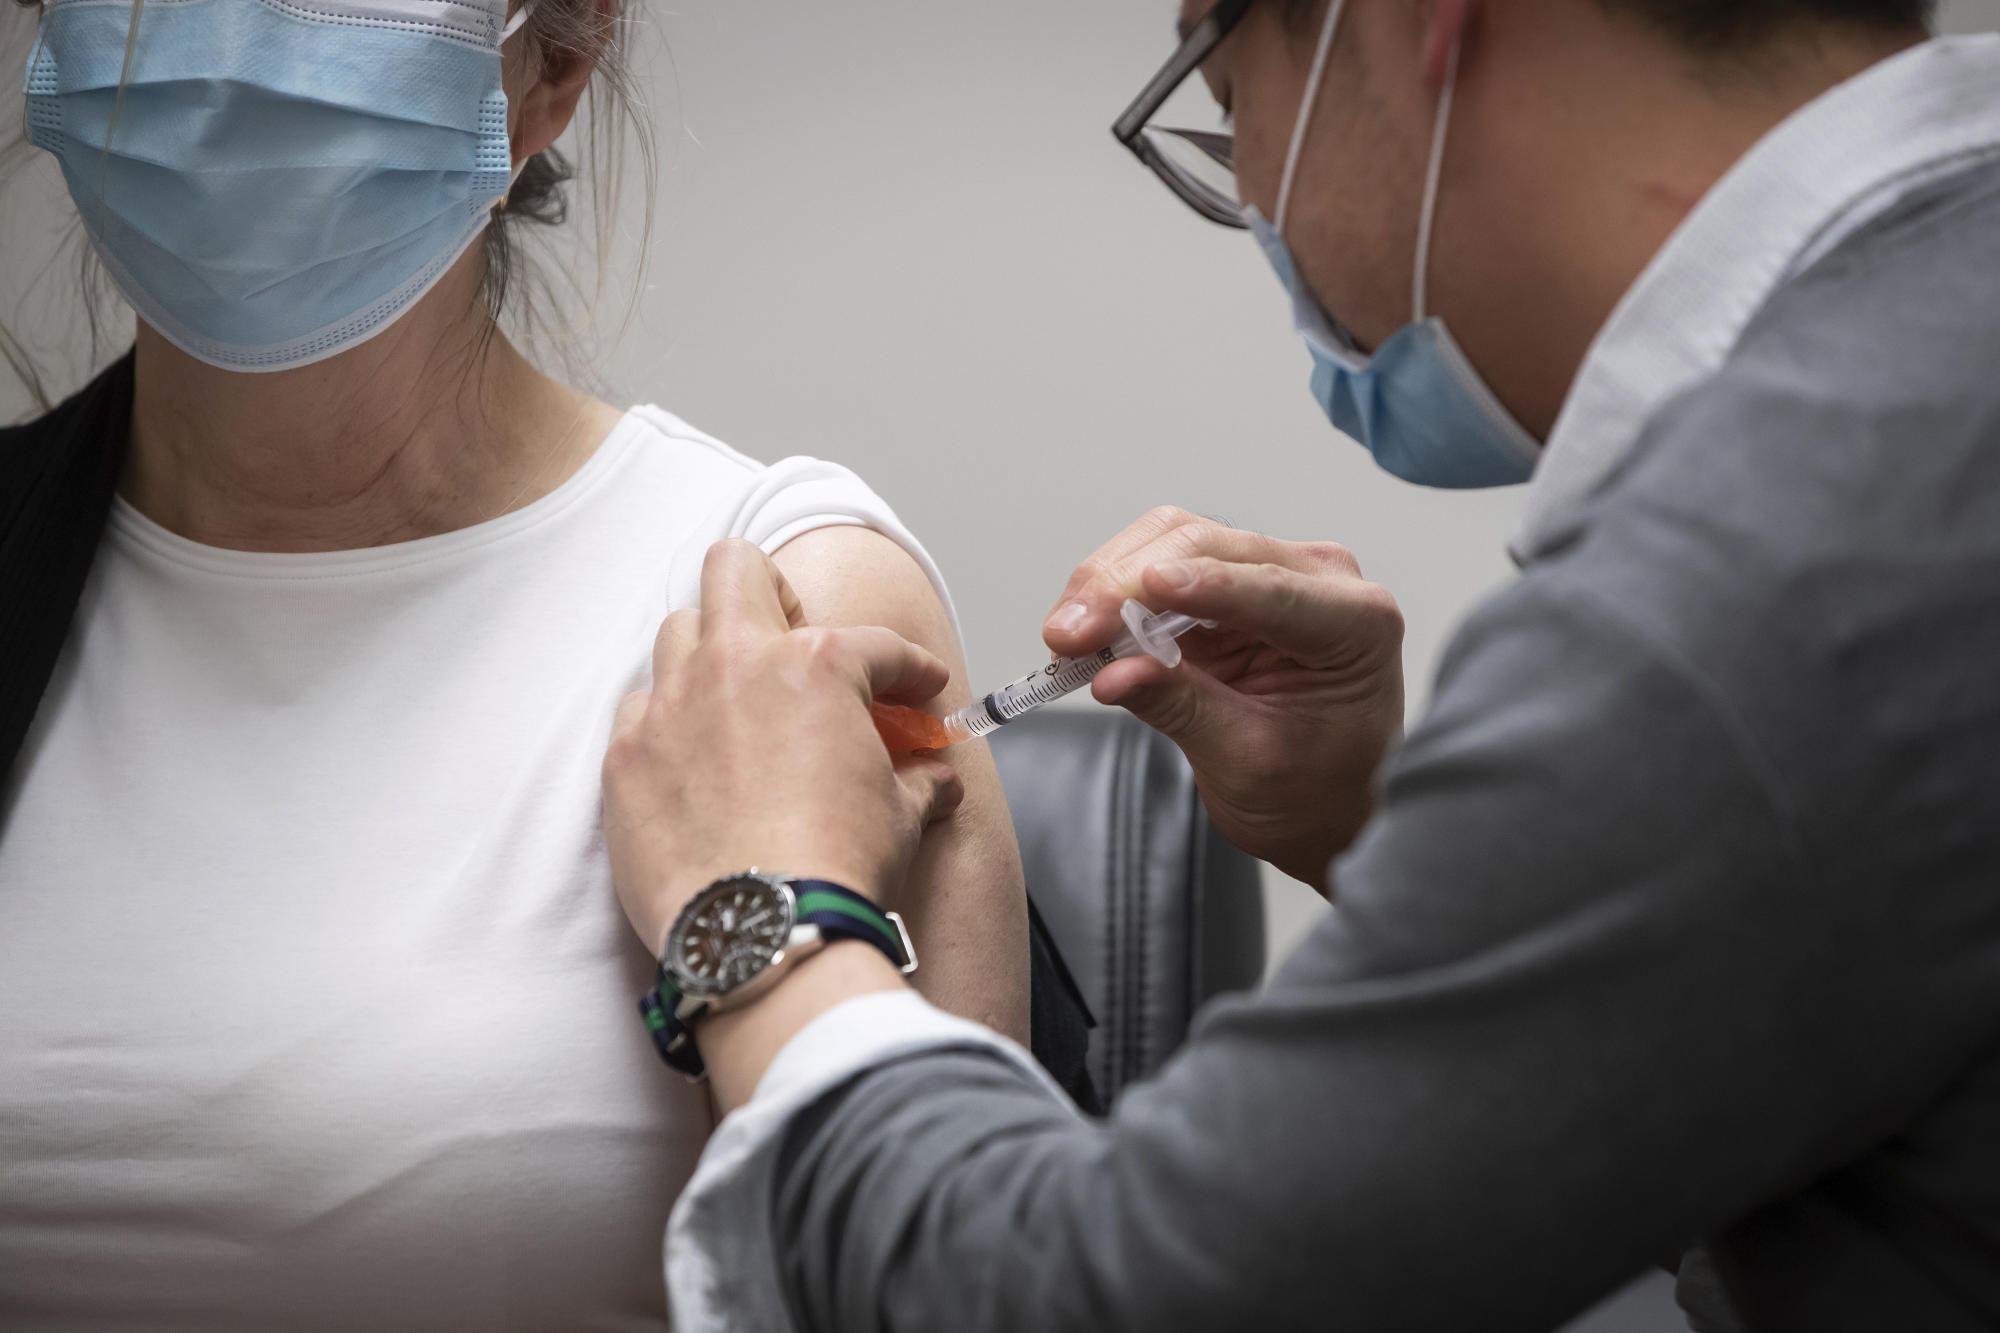 Ontario's COVID-19 vaccine plan for ages 18 and over: What we know about the hot spots, postal codes and sign up process